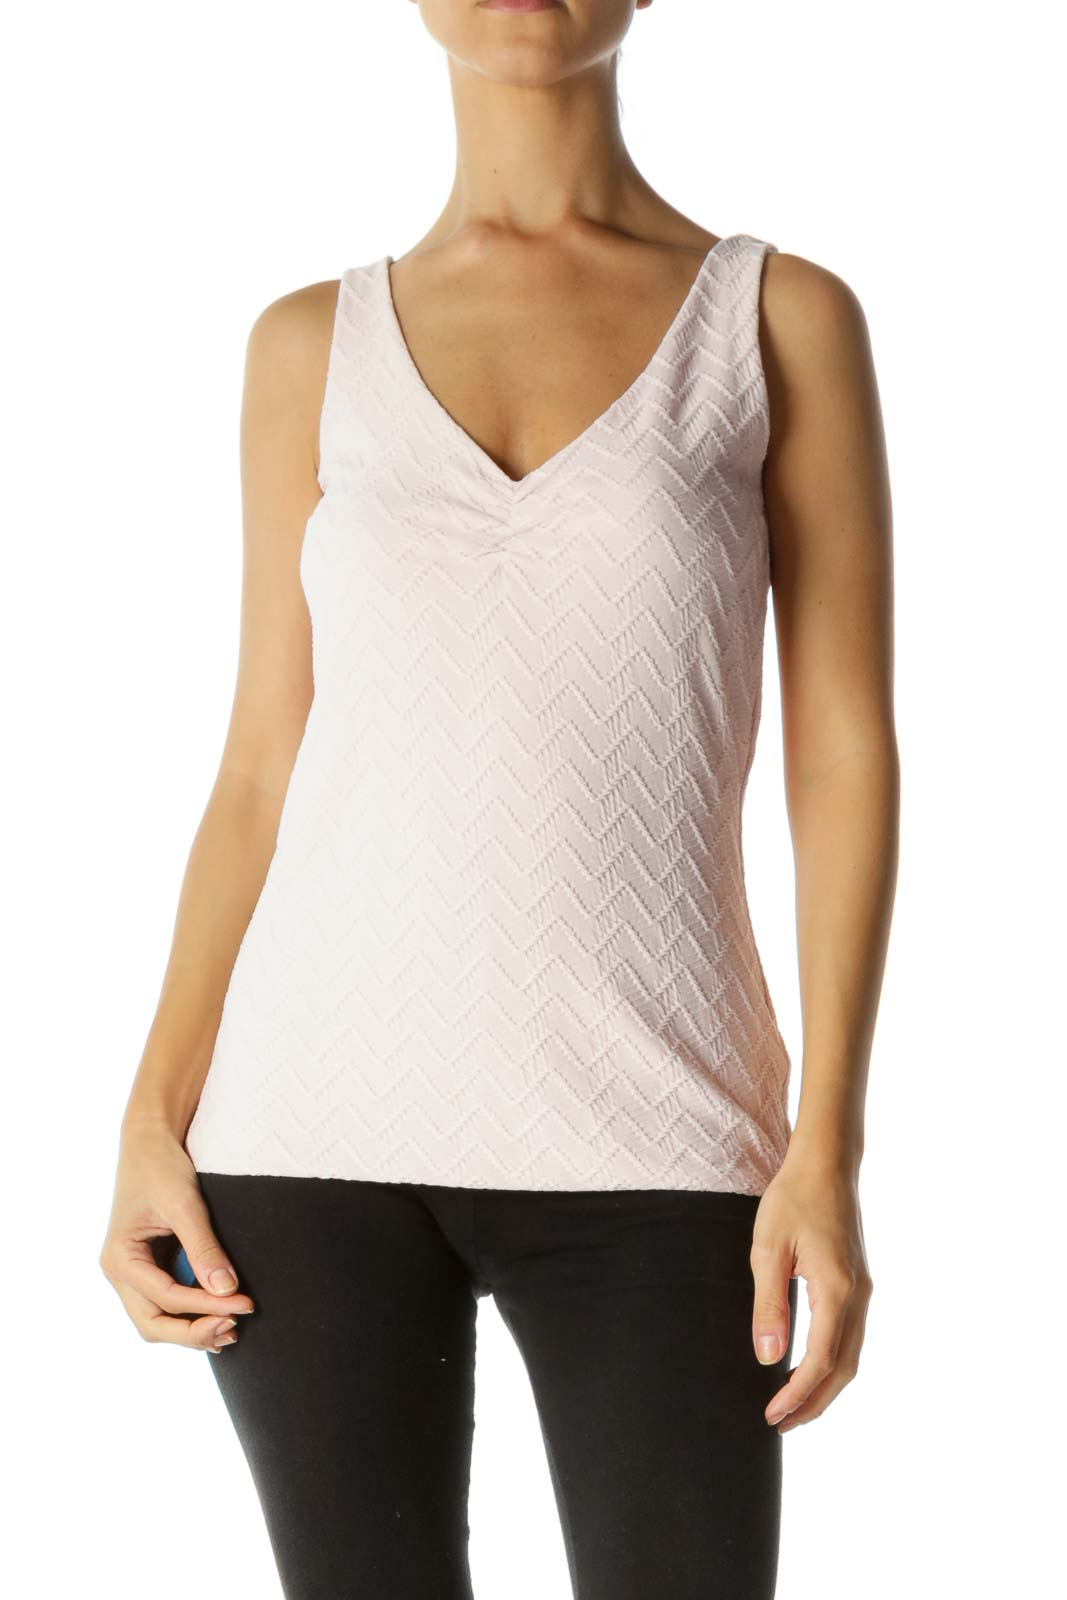 Light Pink V-Neck Scrunched Detail Textured Stretch Tank Top